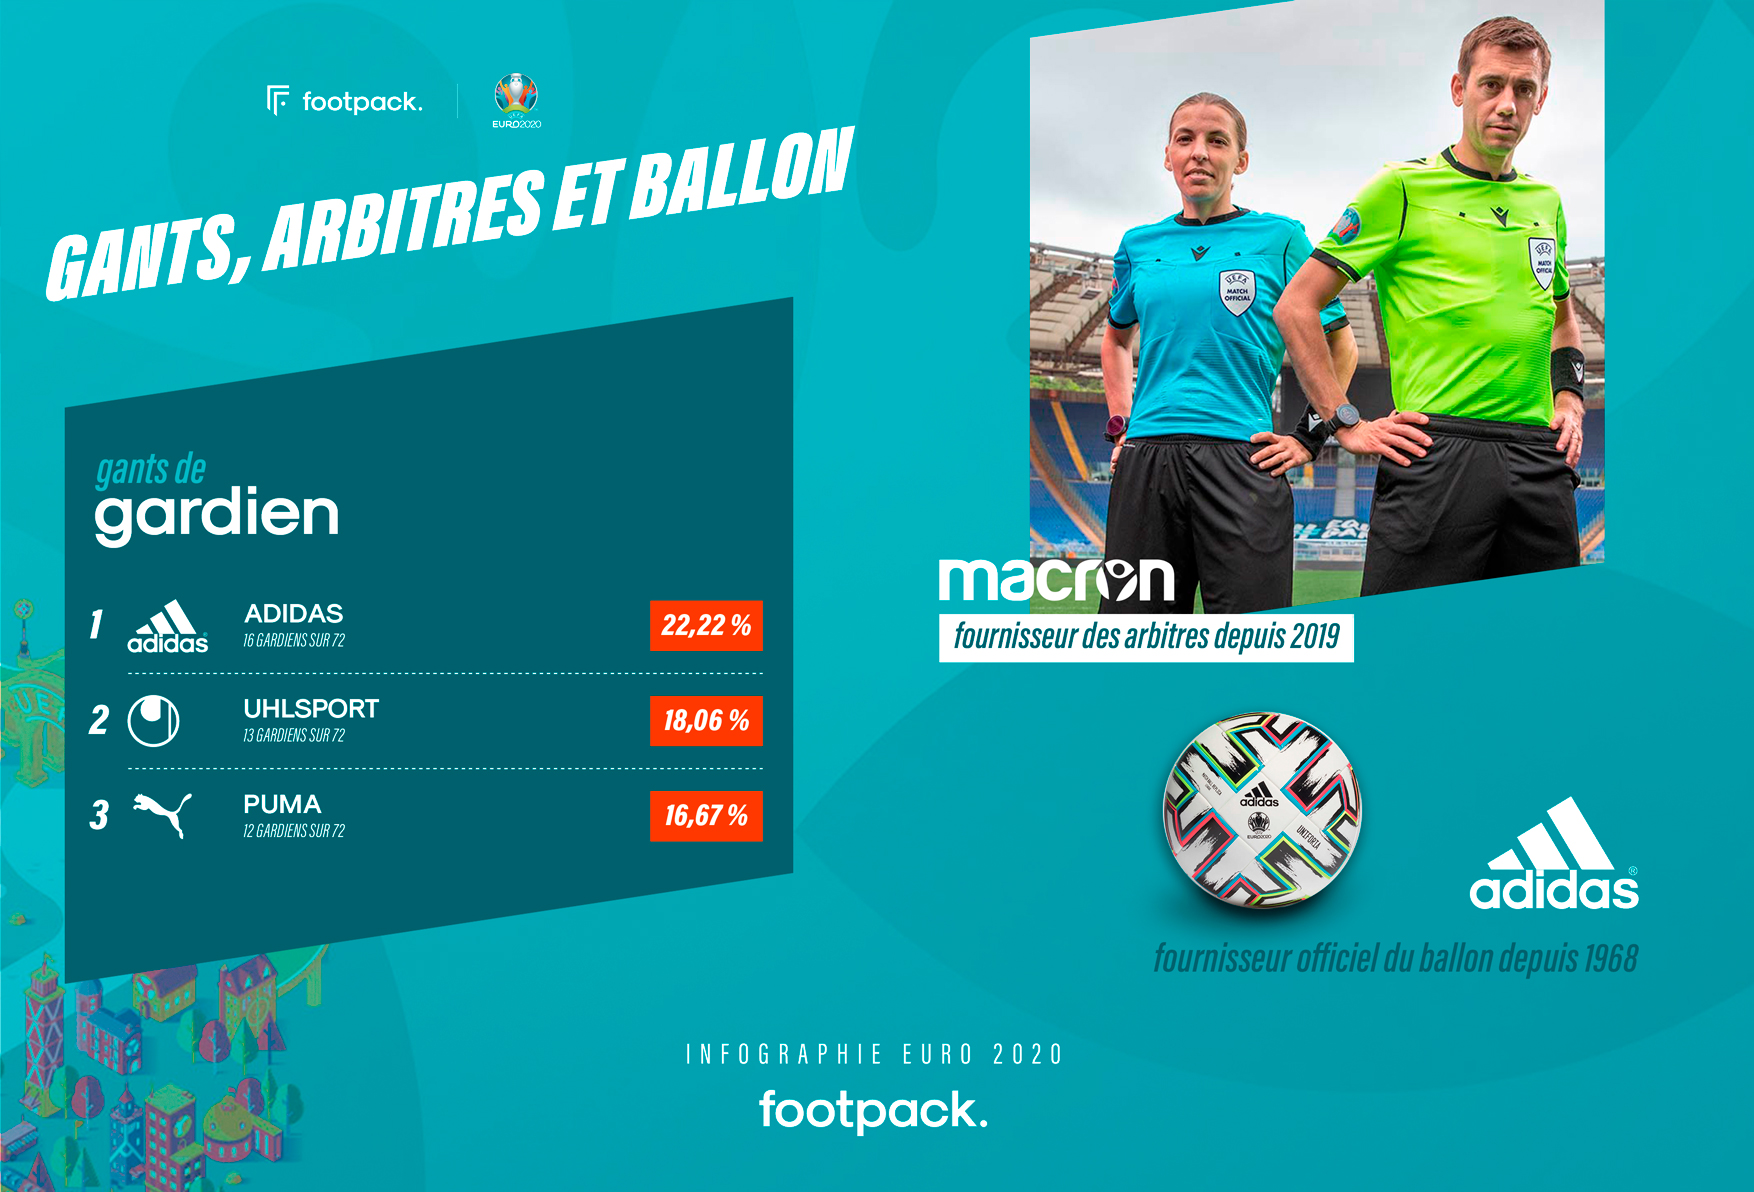 Infographie EURO 2020 crampons, maillots - footpack